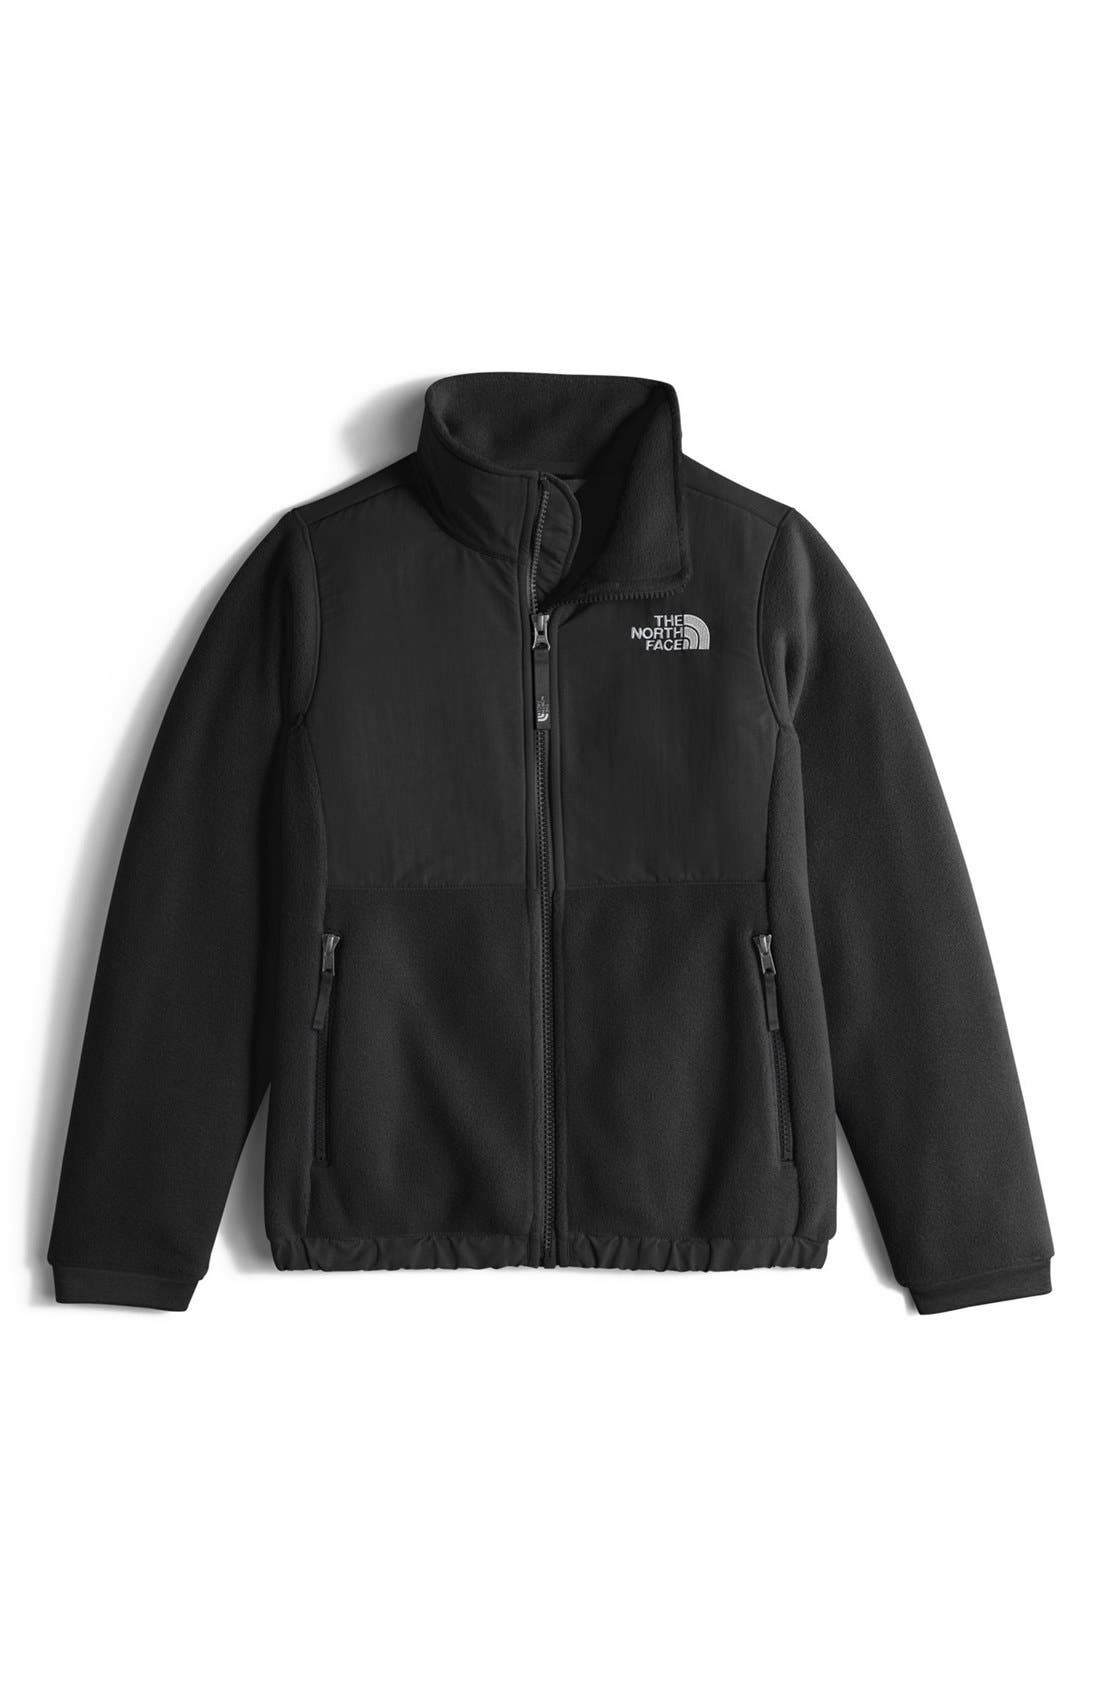 Main Image - The North Face 'Denali' Thermal Jacket (Big Girls)